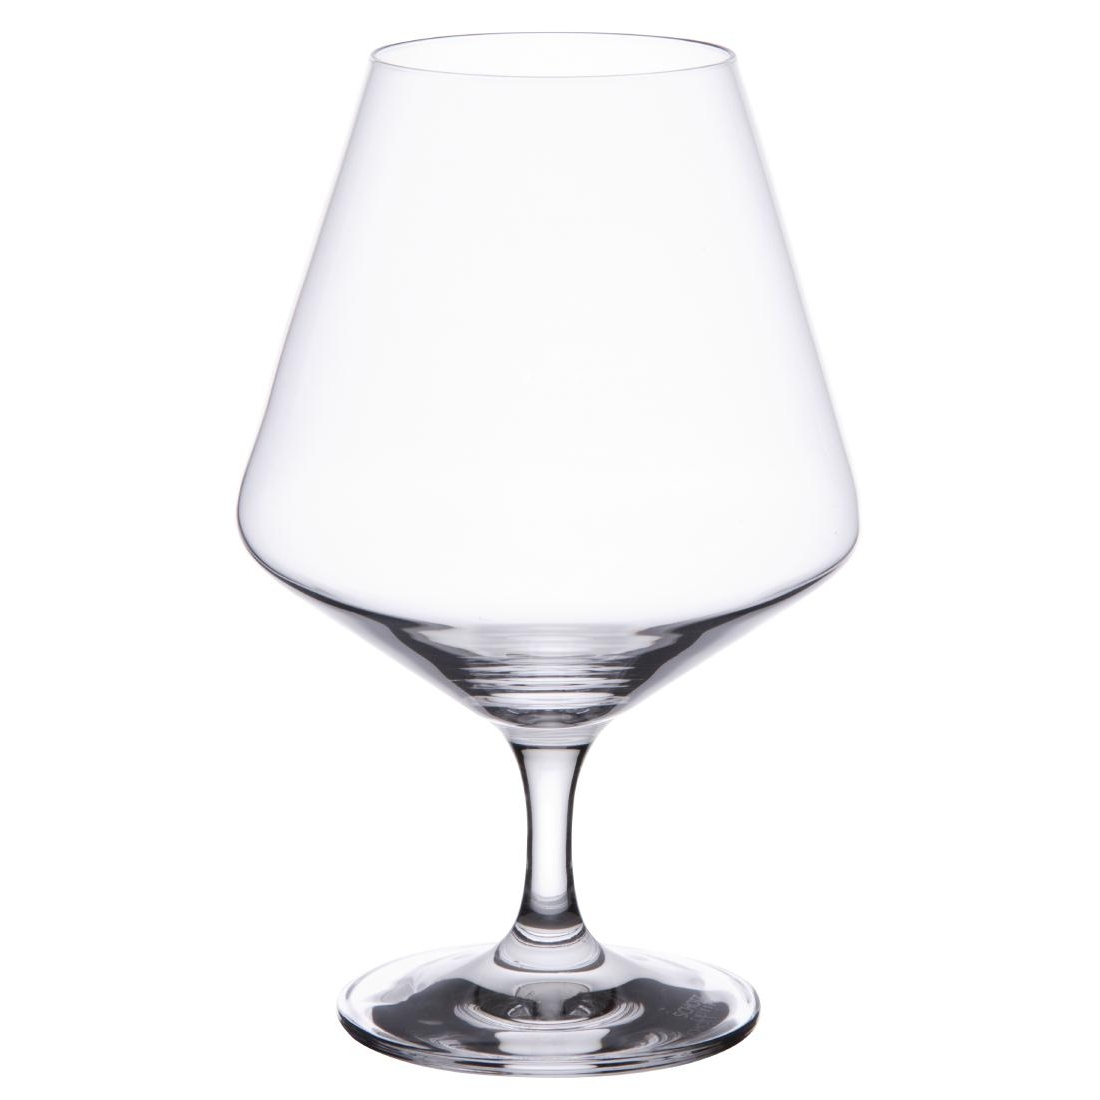 Schott Zwiesel Pure Crystal Cognac Glasses 616ml